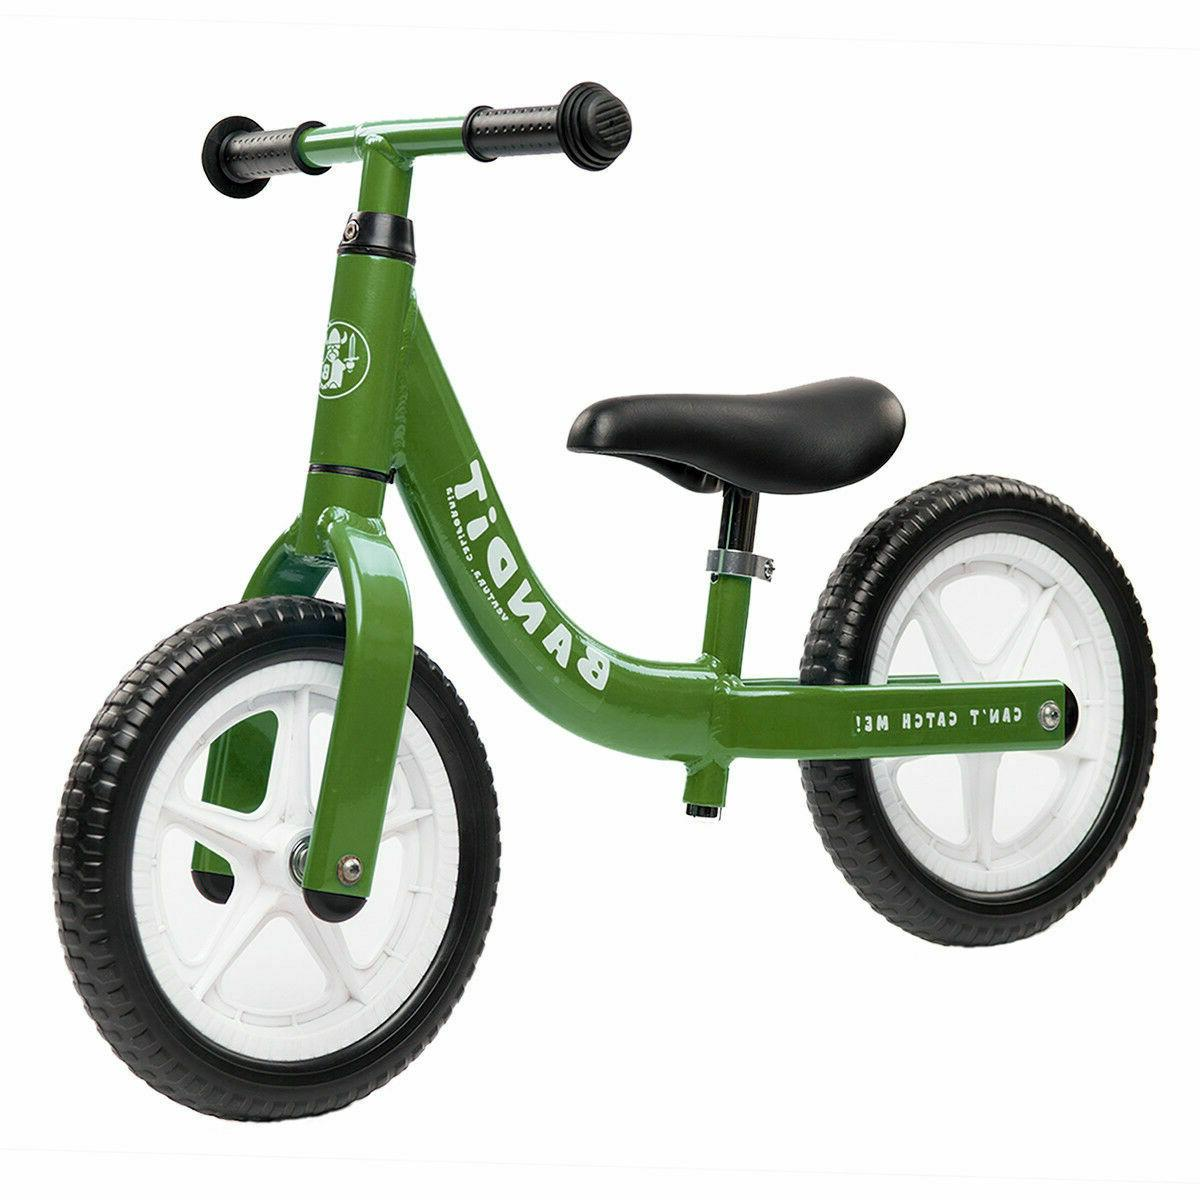 Bandit Bicycles Kids Bike Never Flat Tires Super Light for 1-6 Year